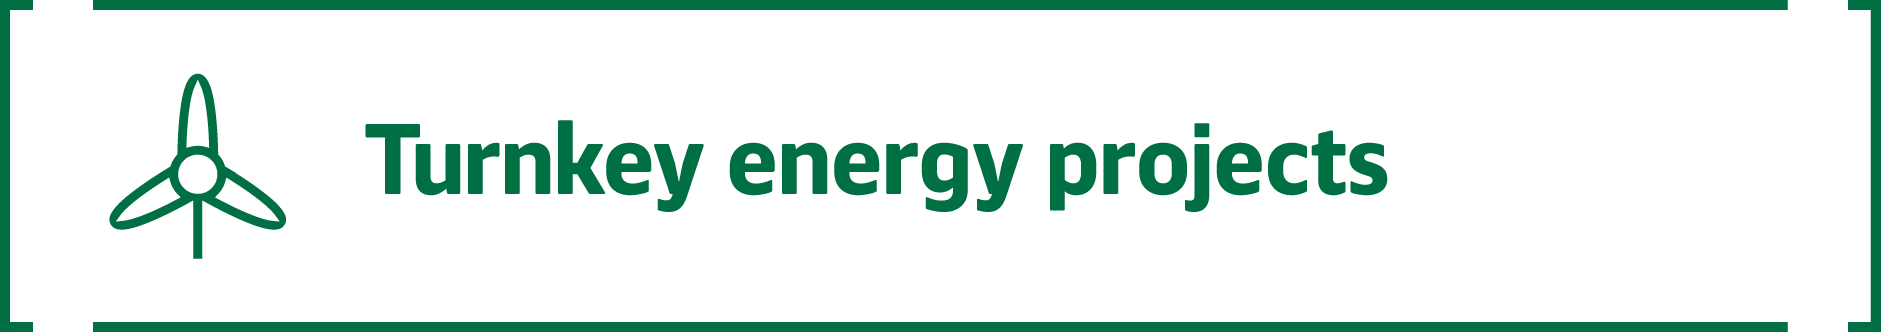 Turnkey-energy-projects